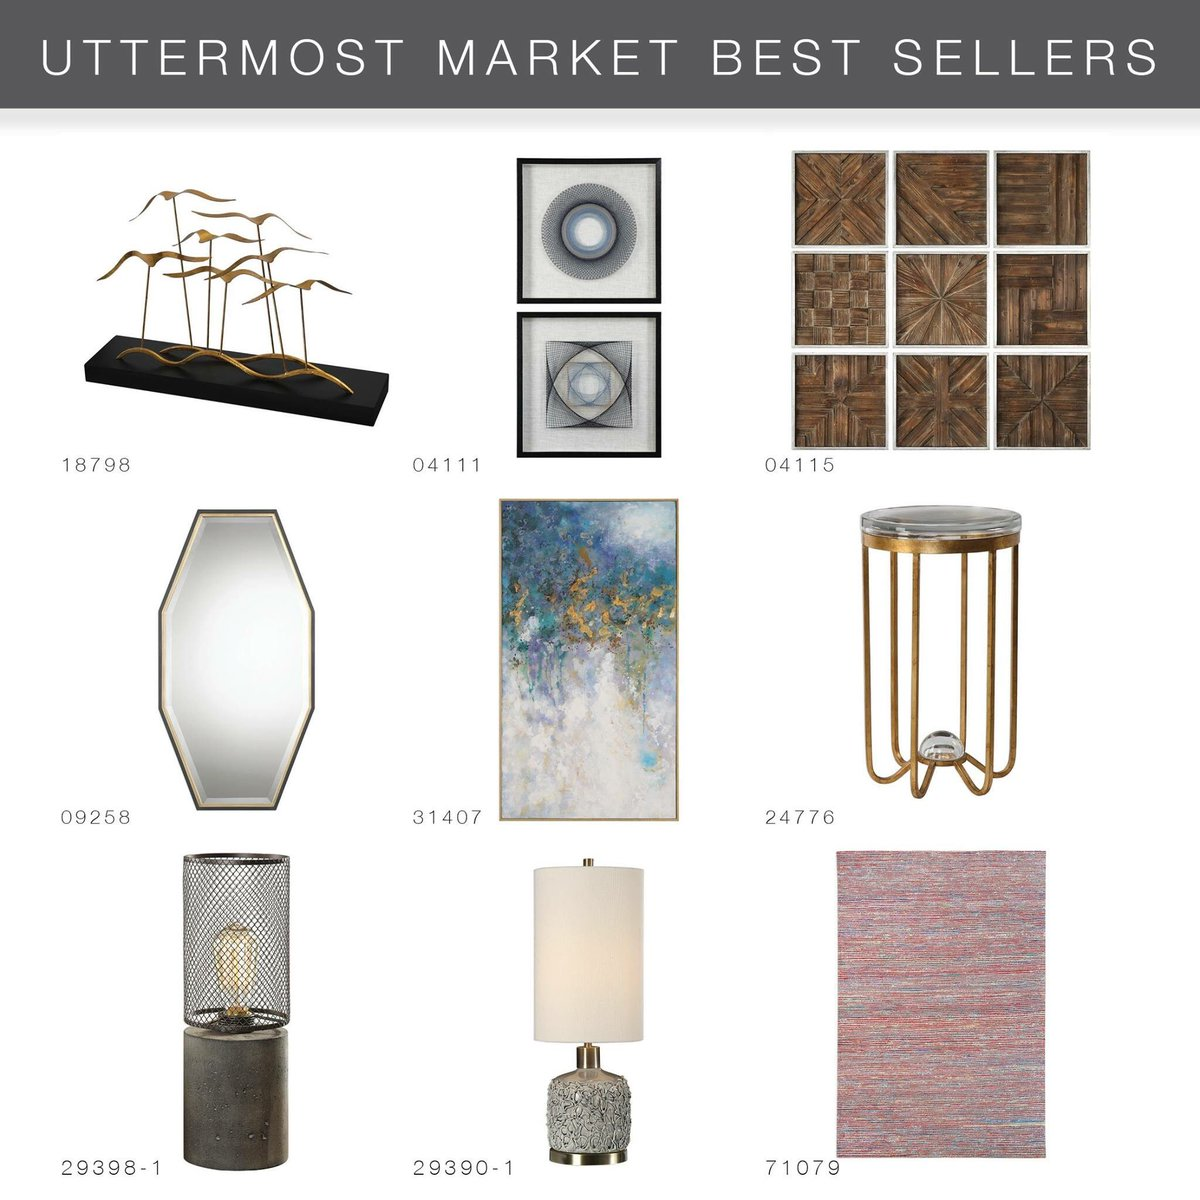 Check them out...then come into #PatdoLightStudio and grab your @UttermostCo beauties! #ProudDistributor  https://t.co/jxjrhK7K8j